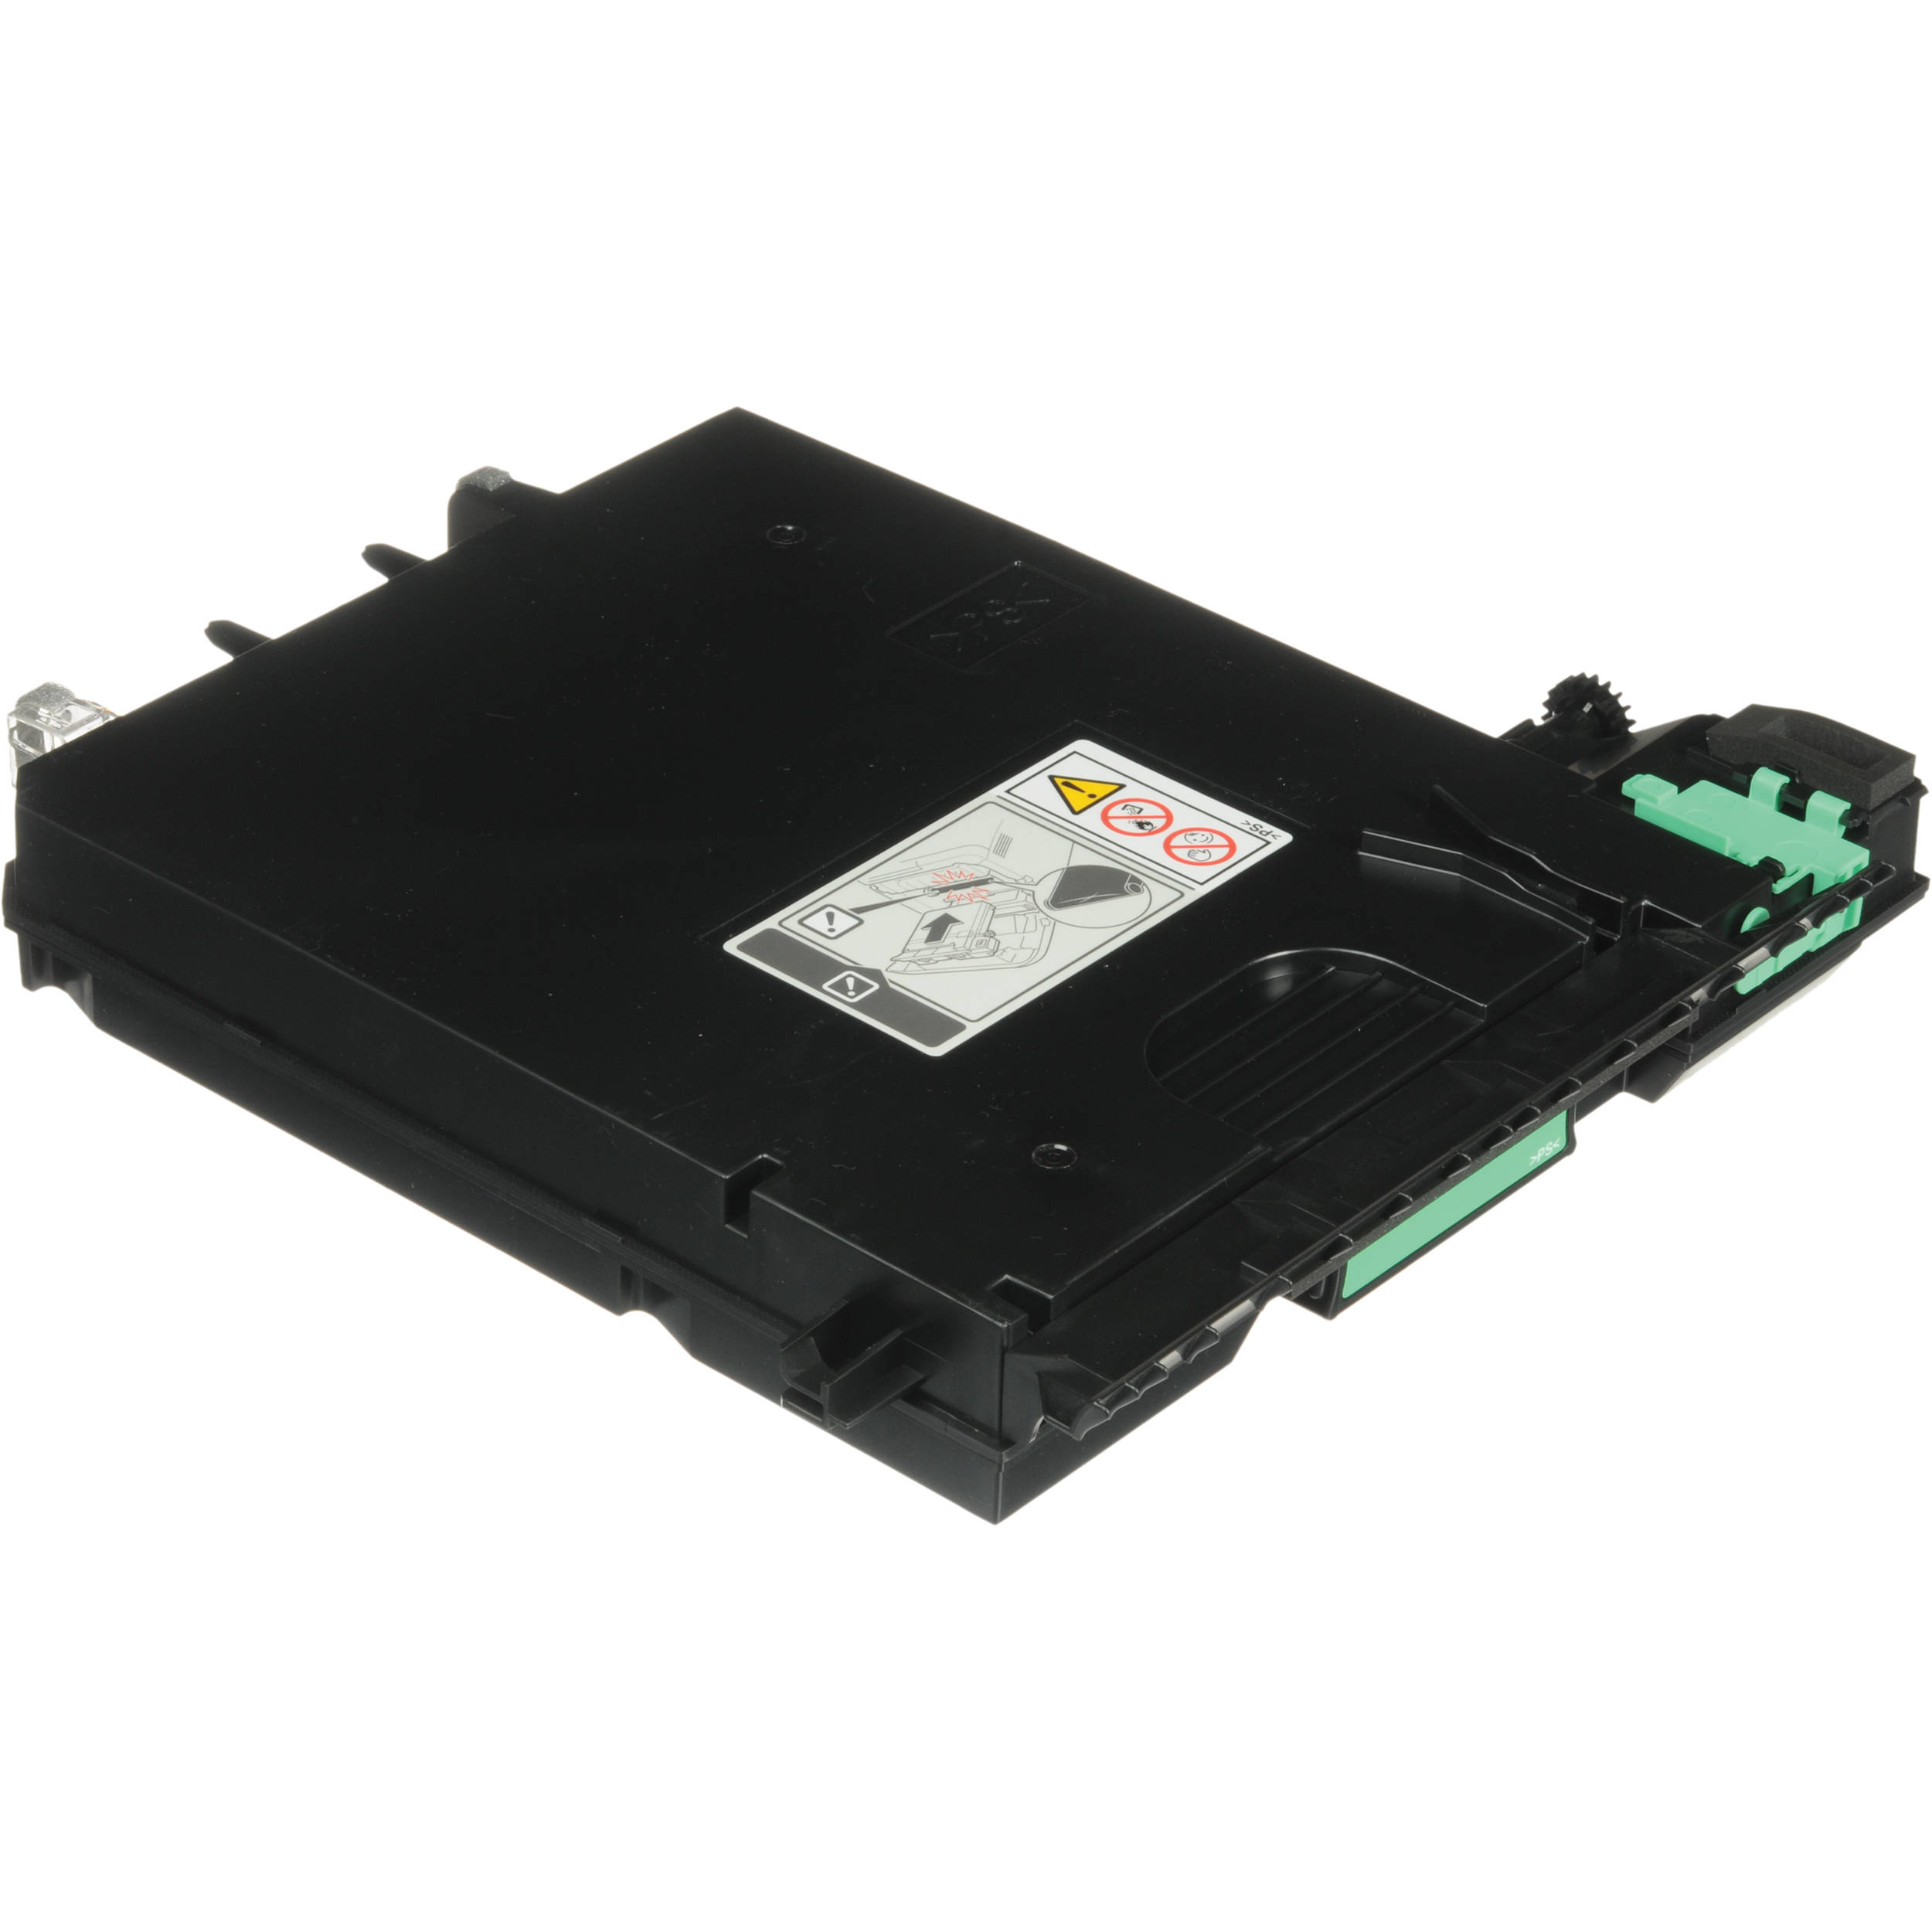 Ricoh 406043 220 Waste Toner Box 25K